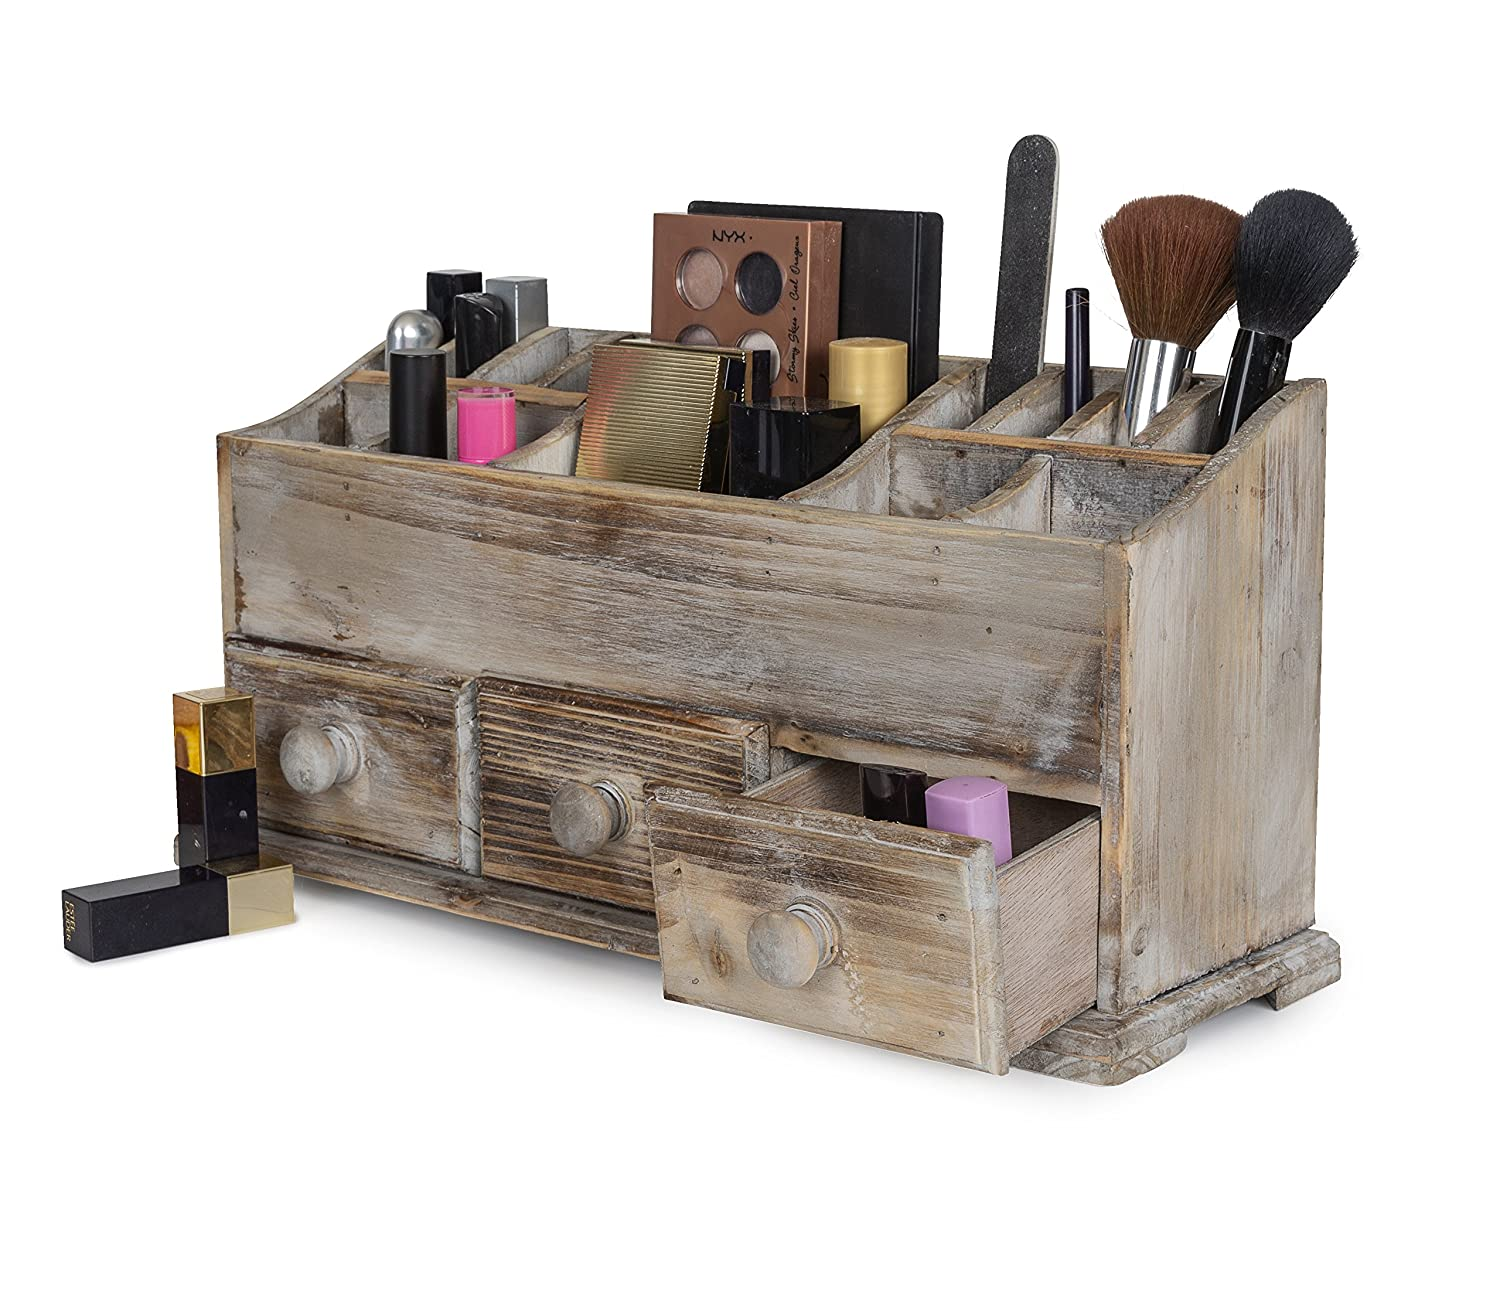 VANITY DRAWER BEAUTY ORGANIZER 3 Drawers - Wooden Cosmetic Storage Box for Neat & Organize Storing of Makeup Tools, Small Accessories at Home & Office Vanities & Bathroom Counter-top (Rustic)